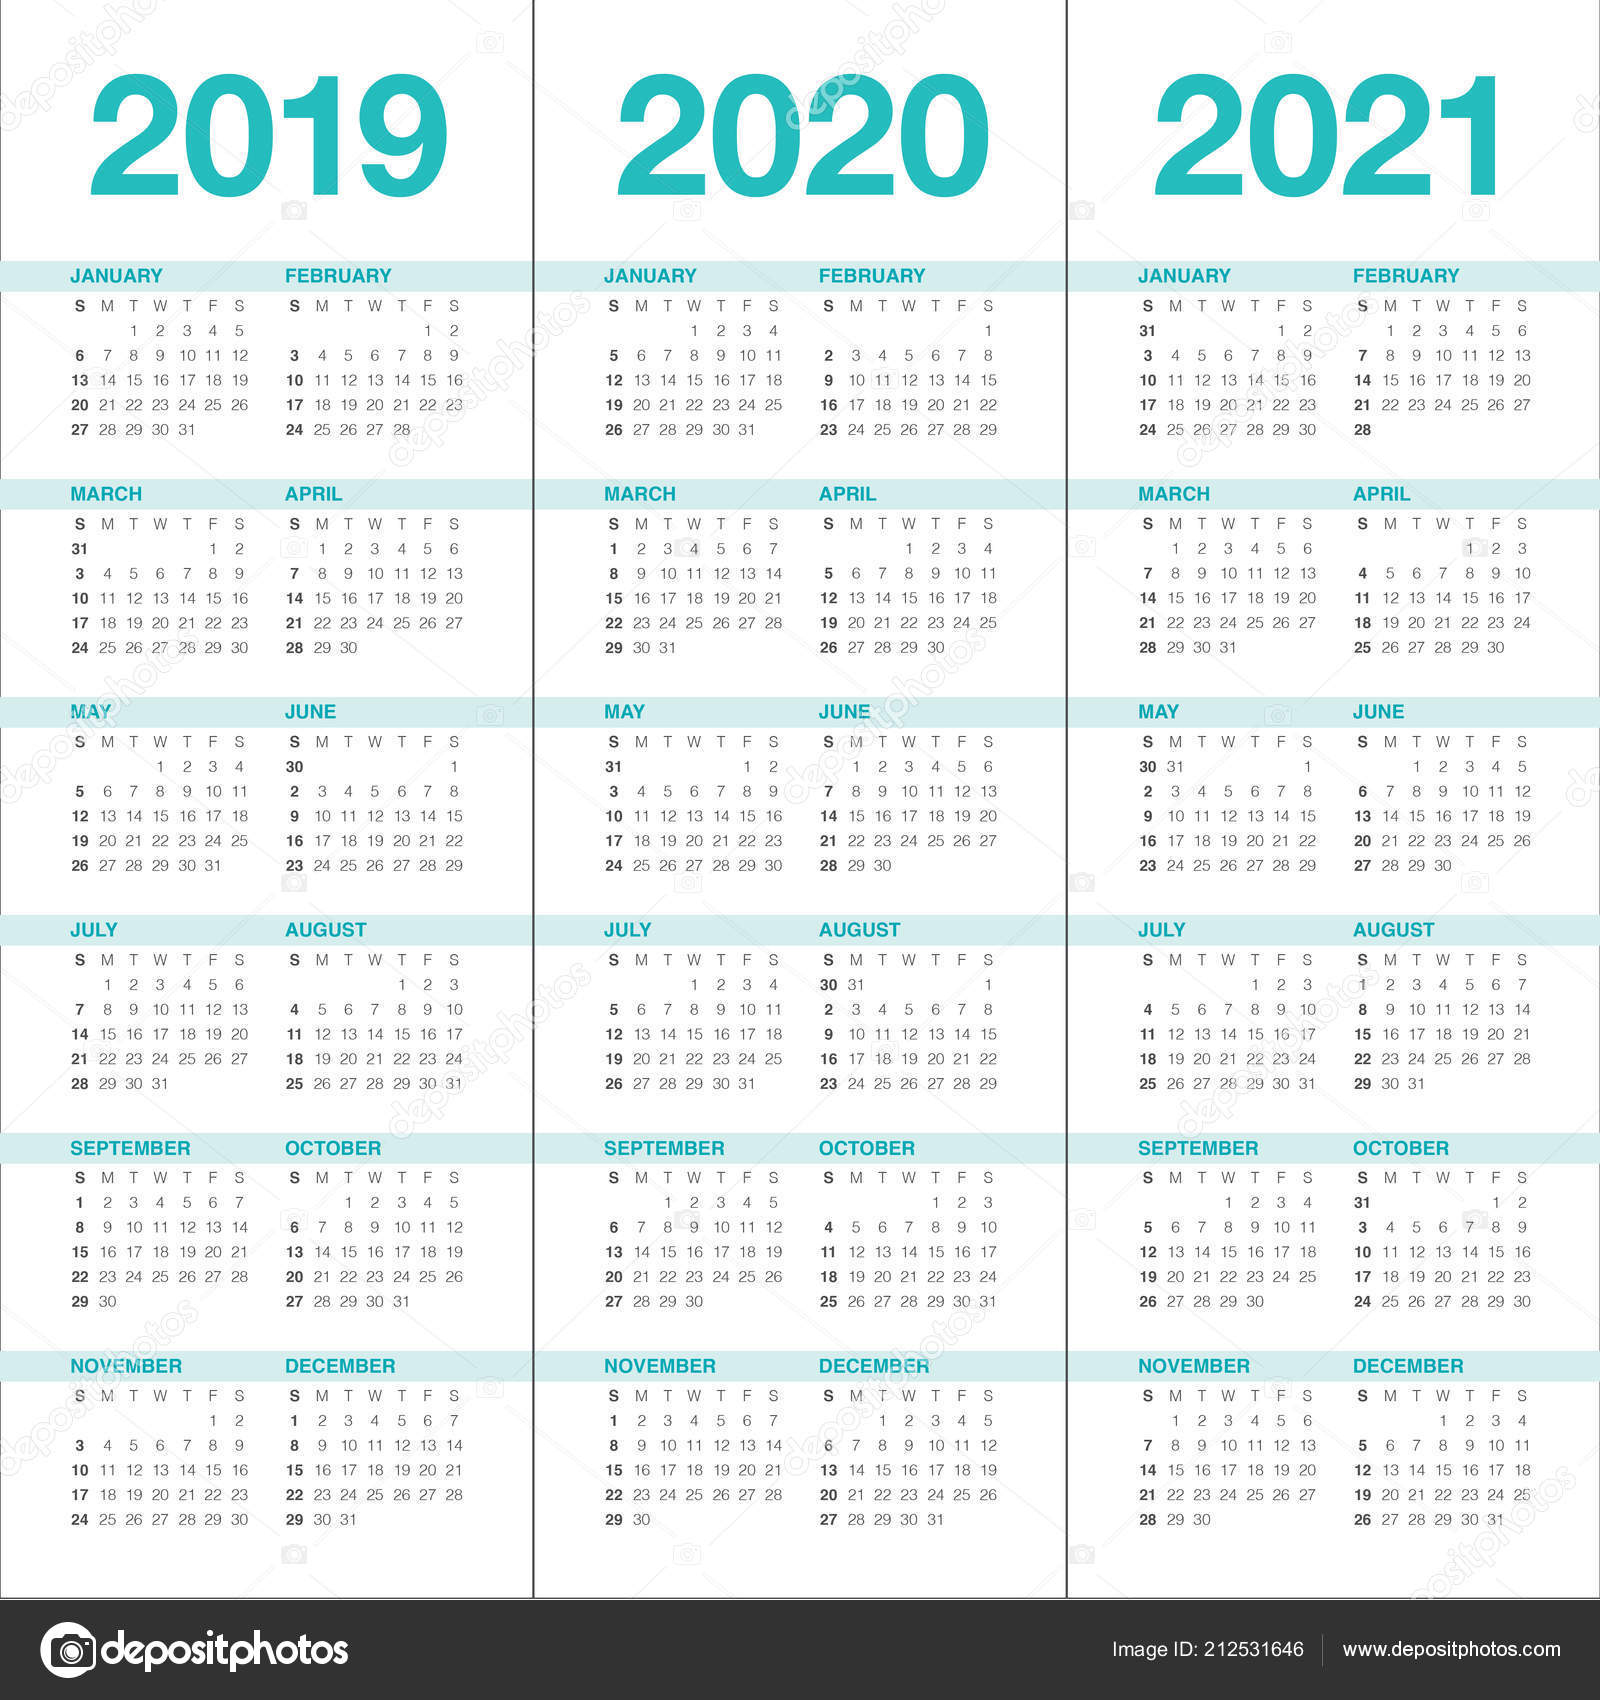 Calendrier 2020 2021.Year 2019 2020 2021 Calendar Vector Design Template Simple